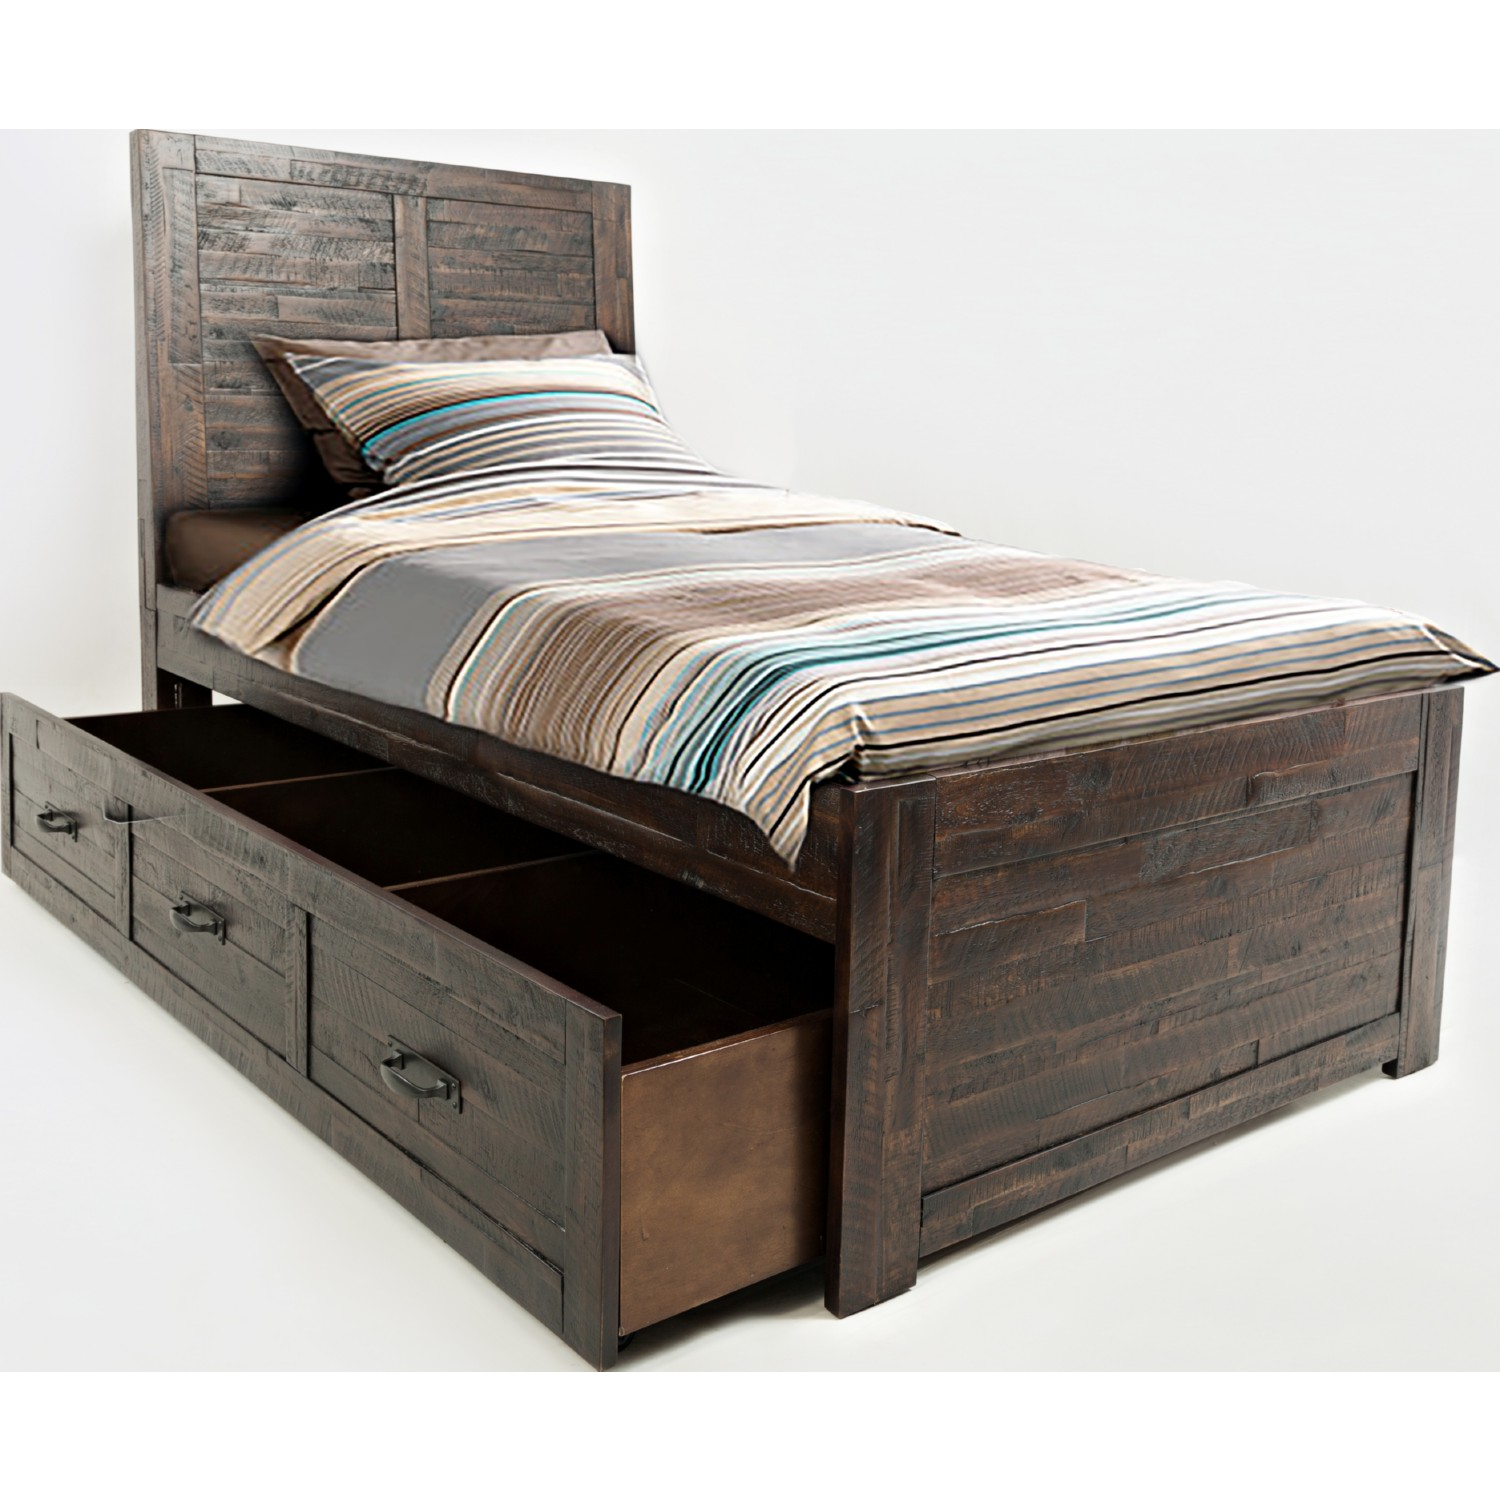 Twin bed with trundle - Jackson Lodge Twin Bed W Trundle In Distressed Finish